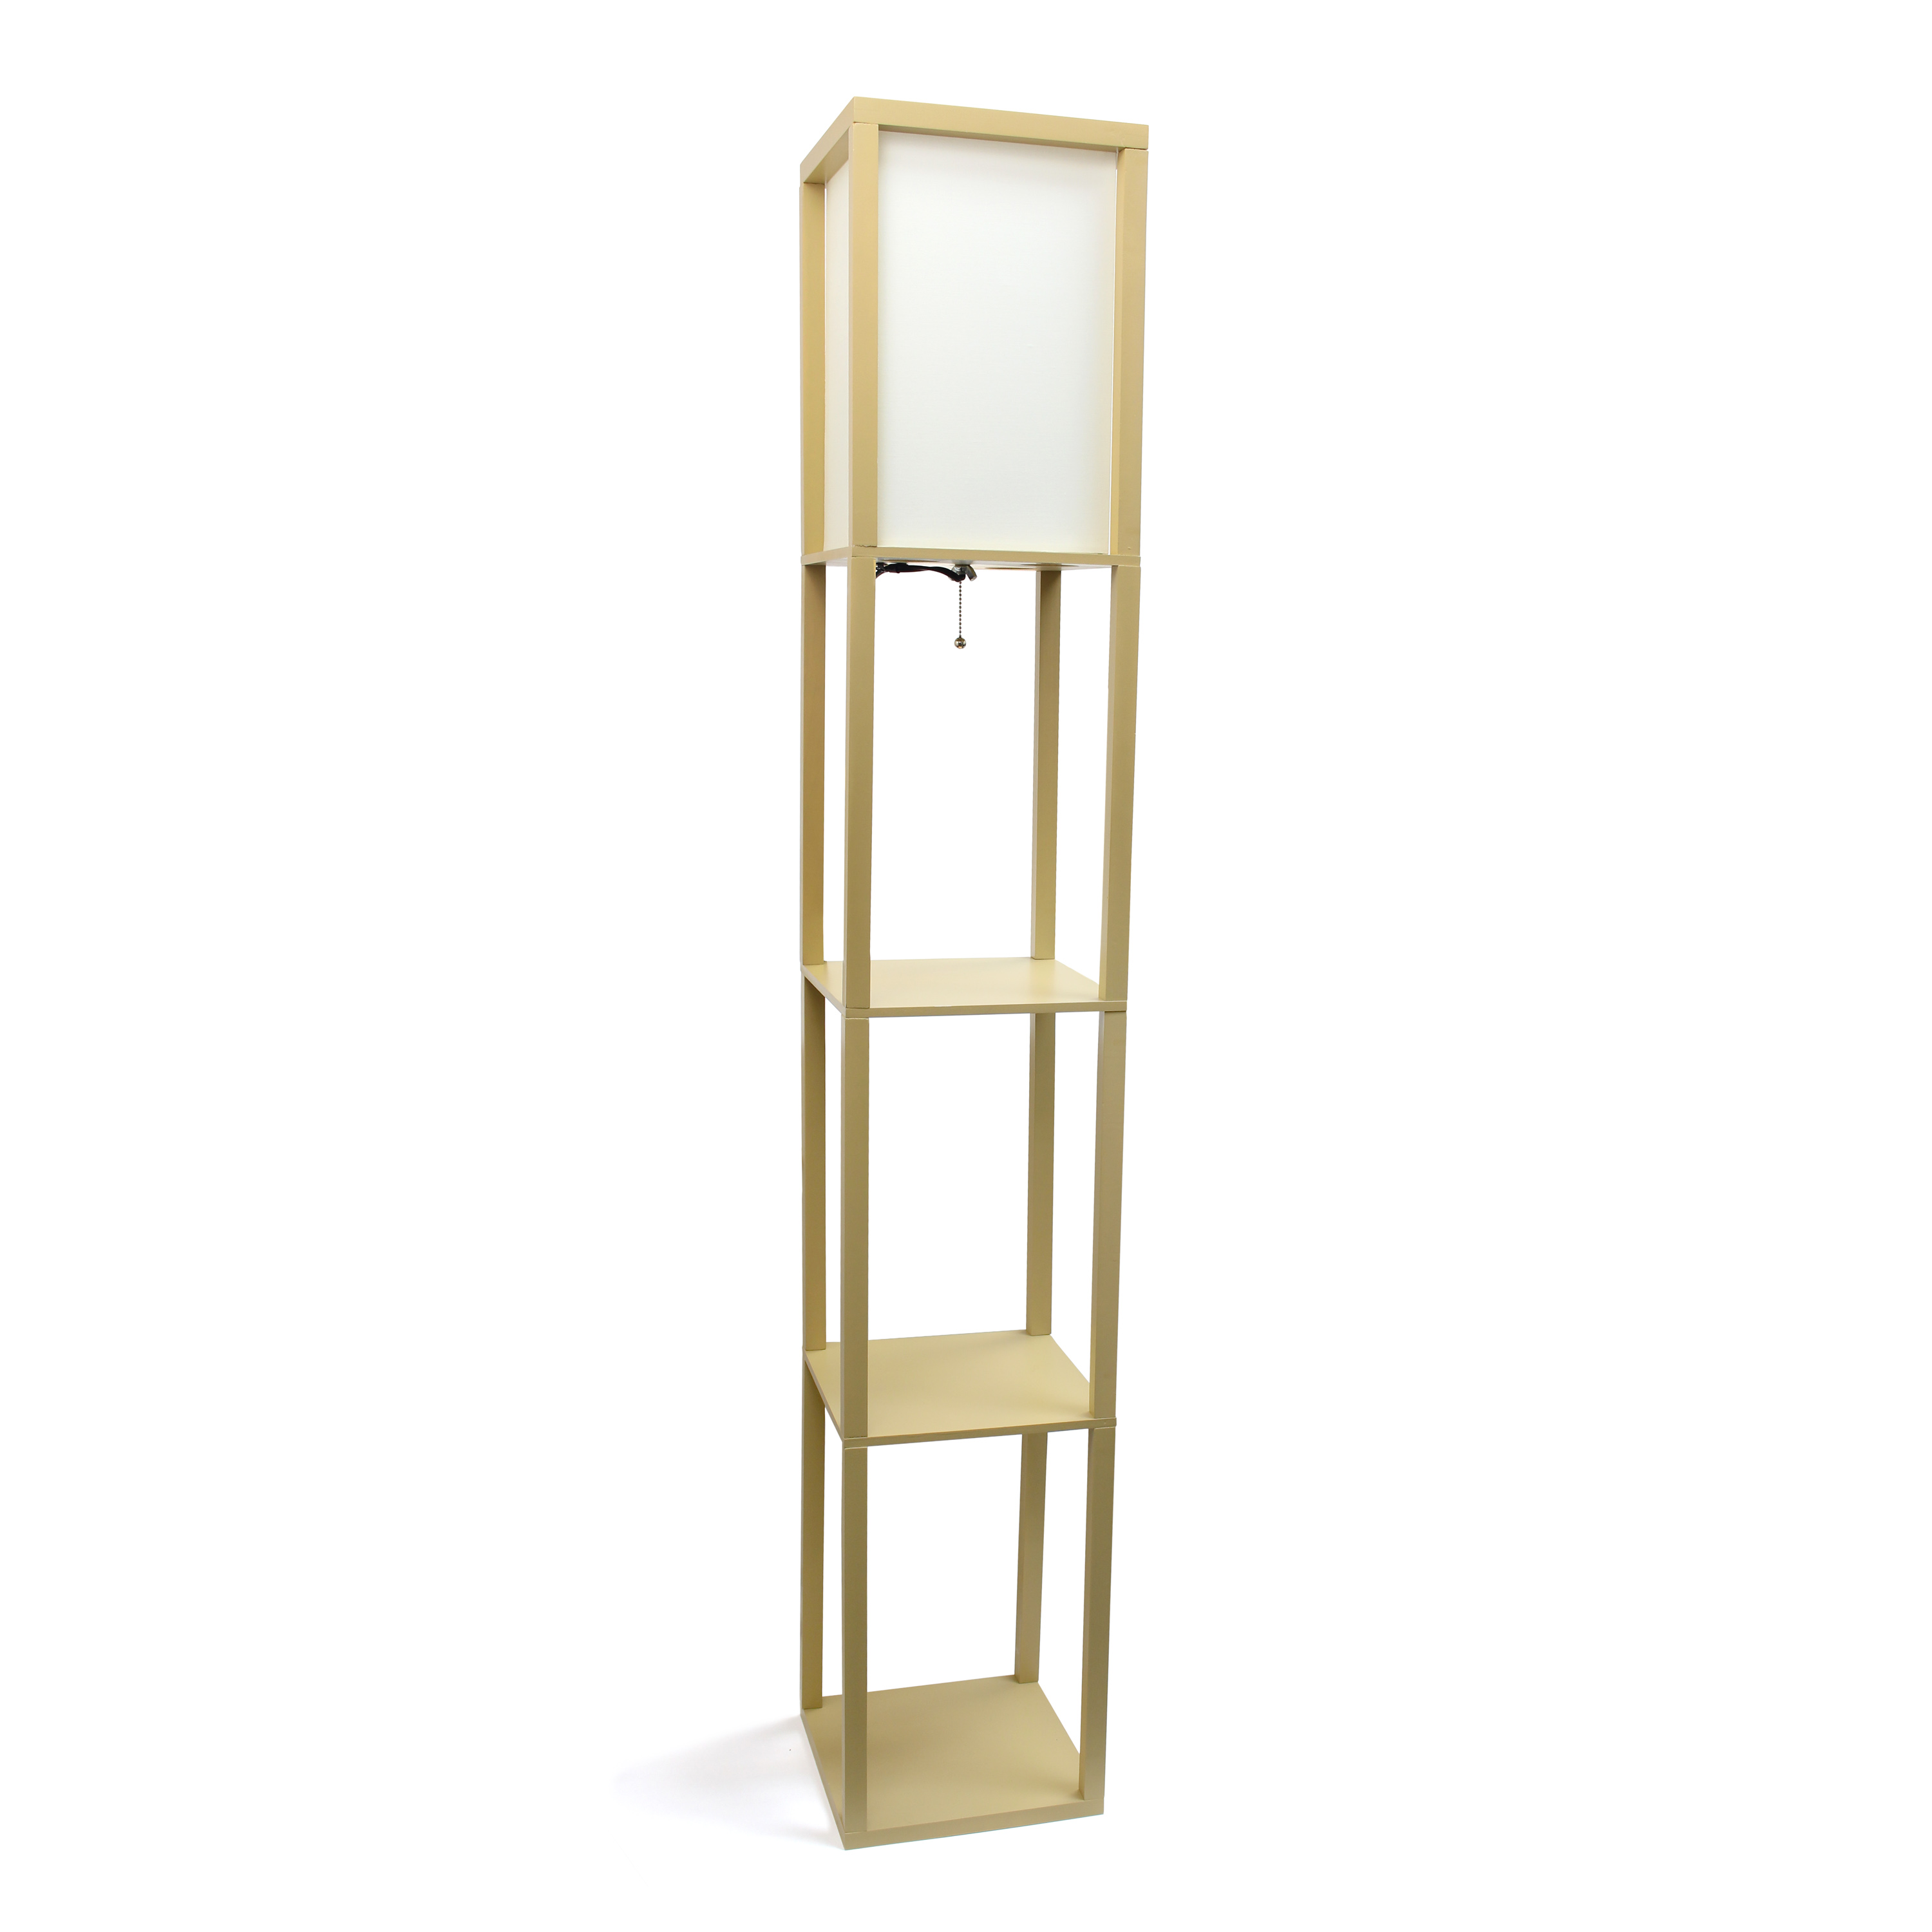 Simple Designs Floor Lamp Etagere Organizer Storage Shelf with Linen Shade, Tan